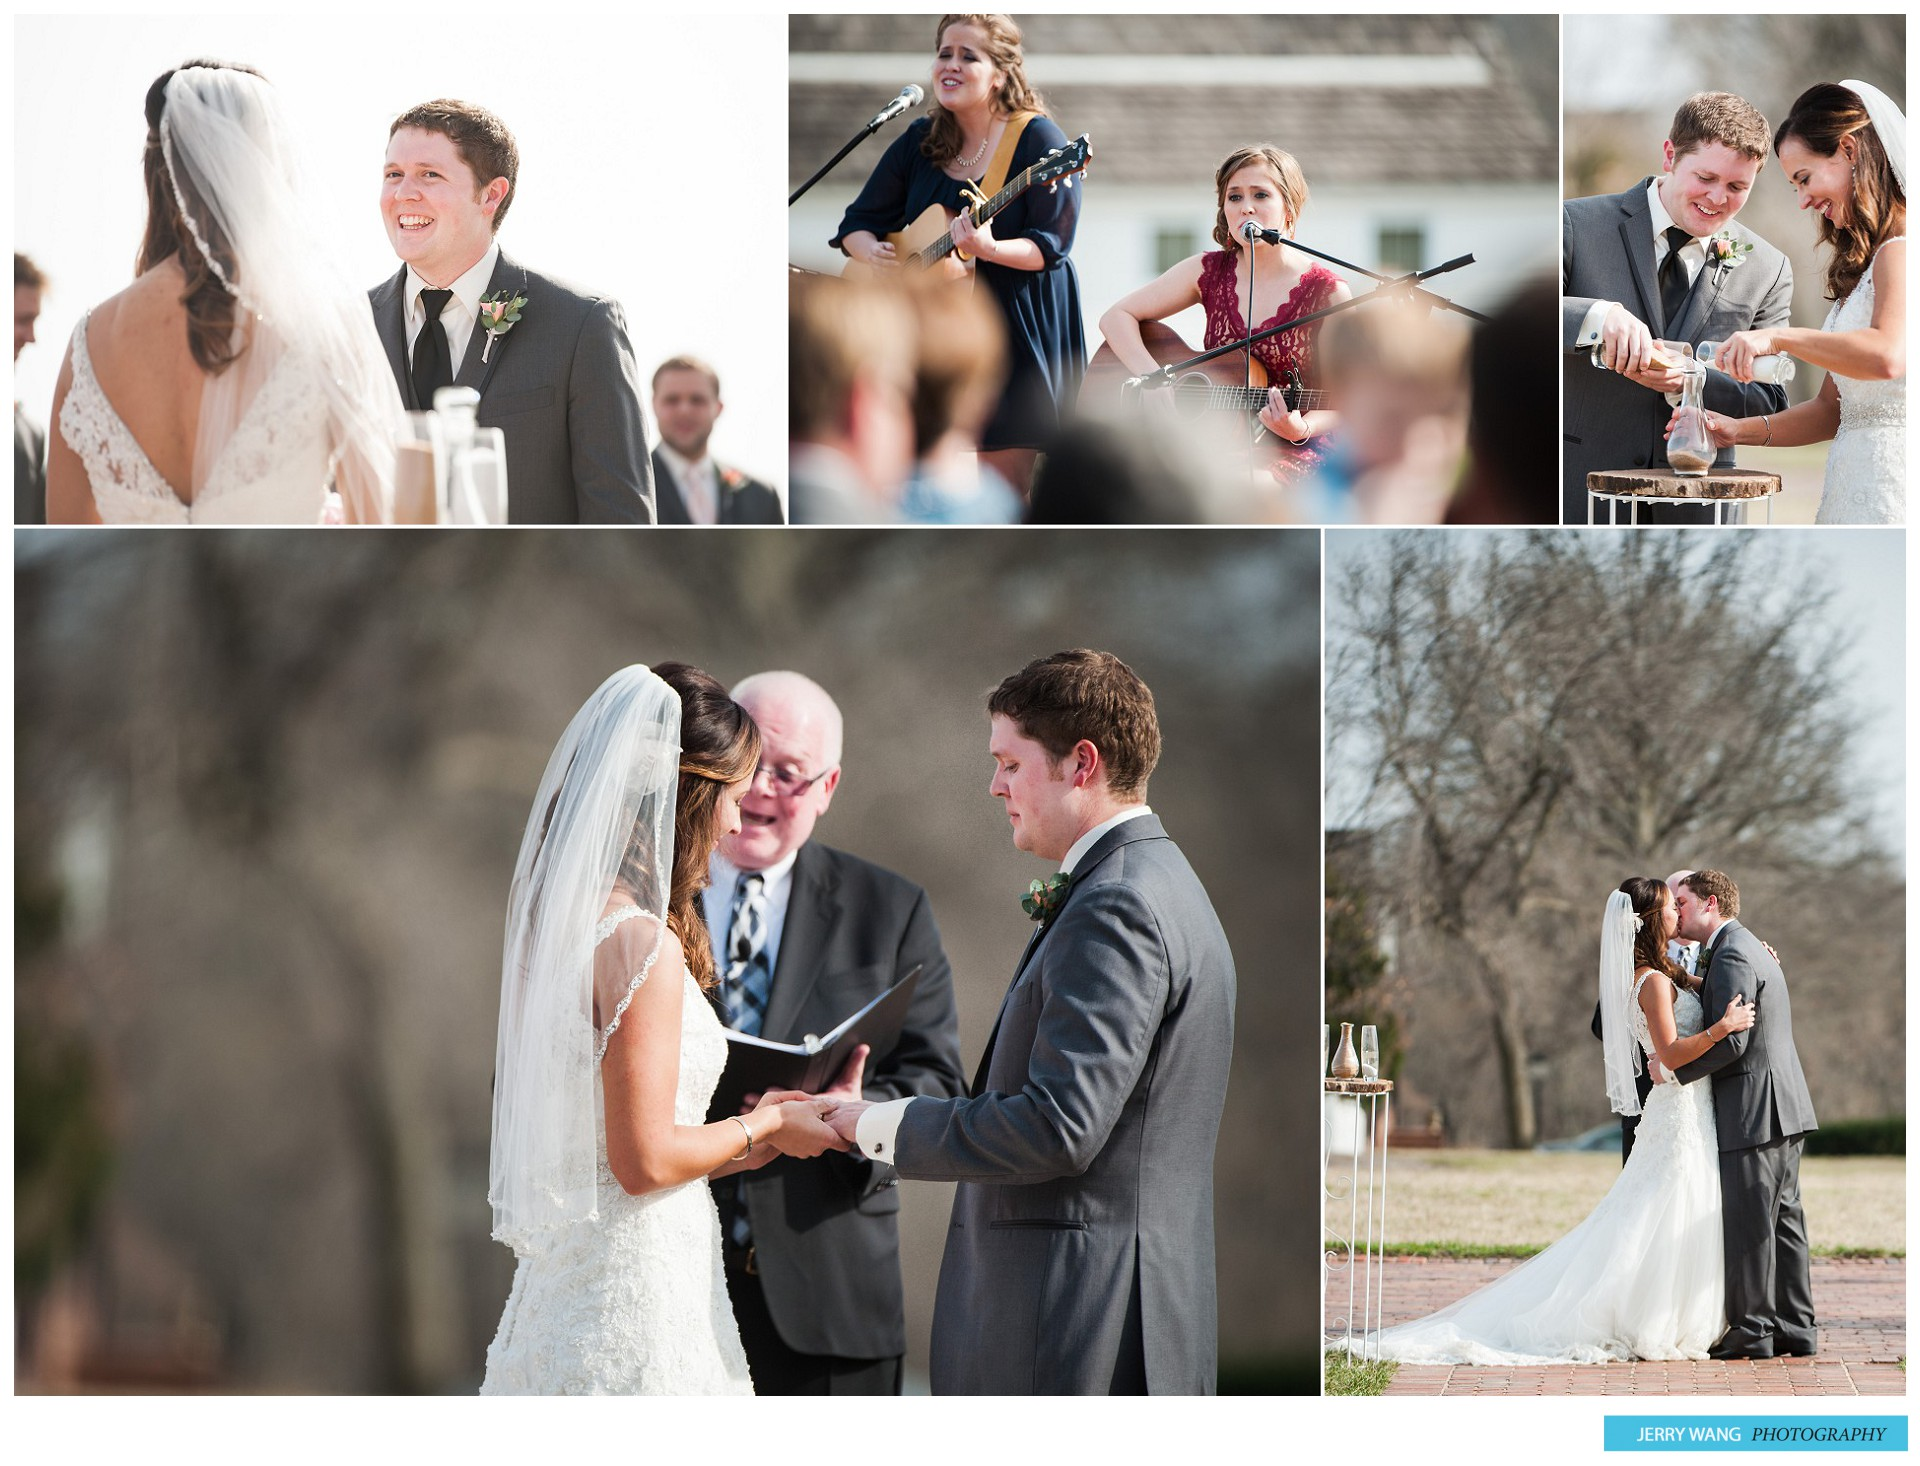 K&J_Mildale Farm Wedding_Bonner Springs_023